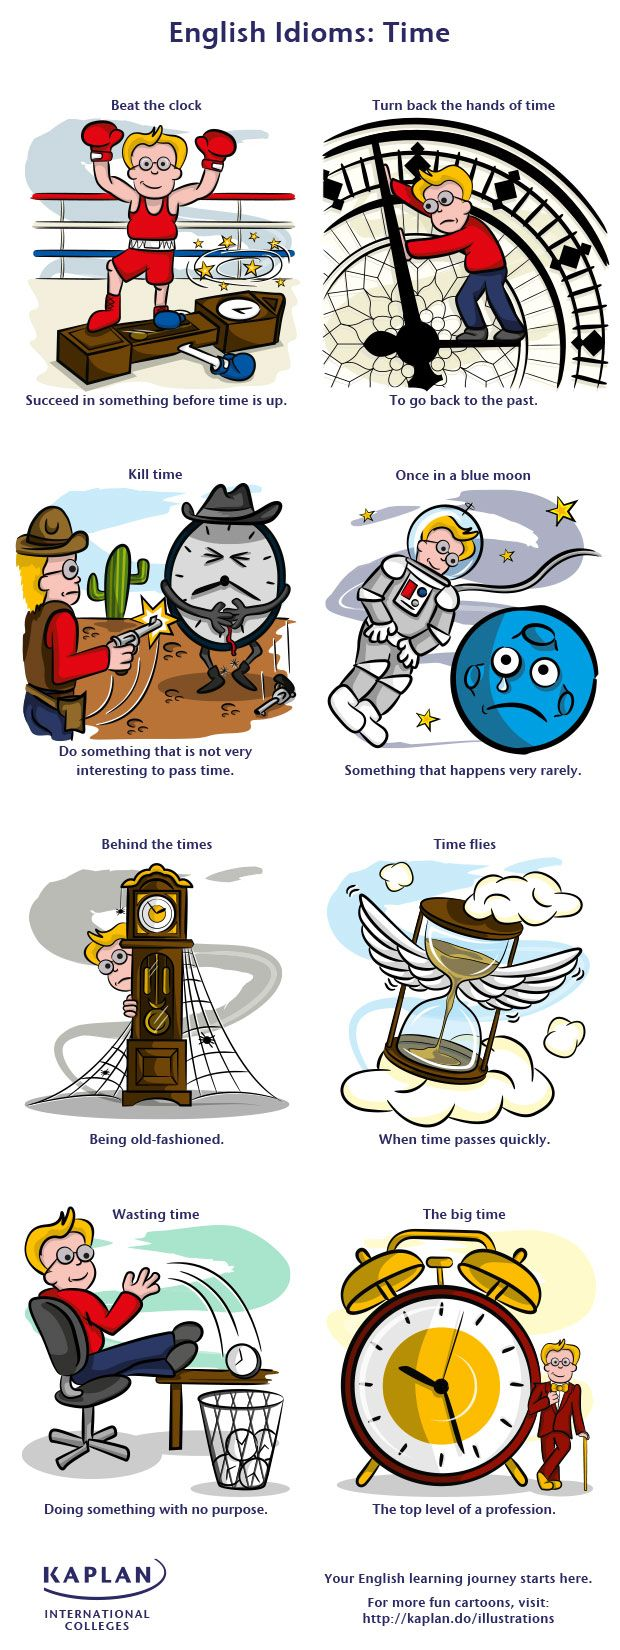 Time Idioms - Kaplan International Colleges Blog